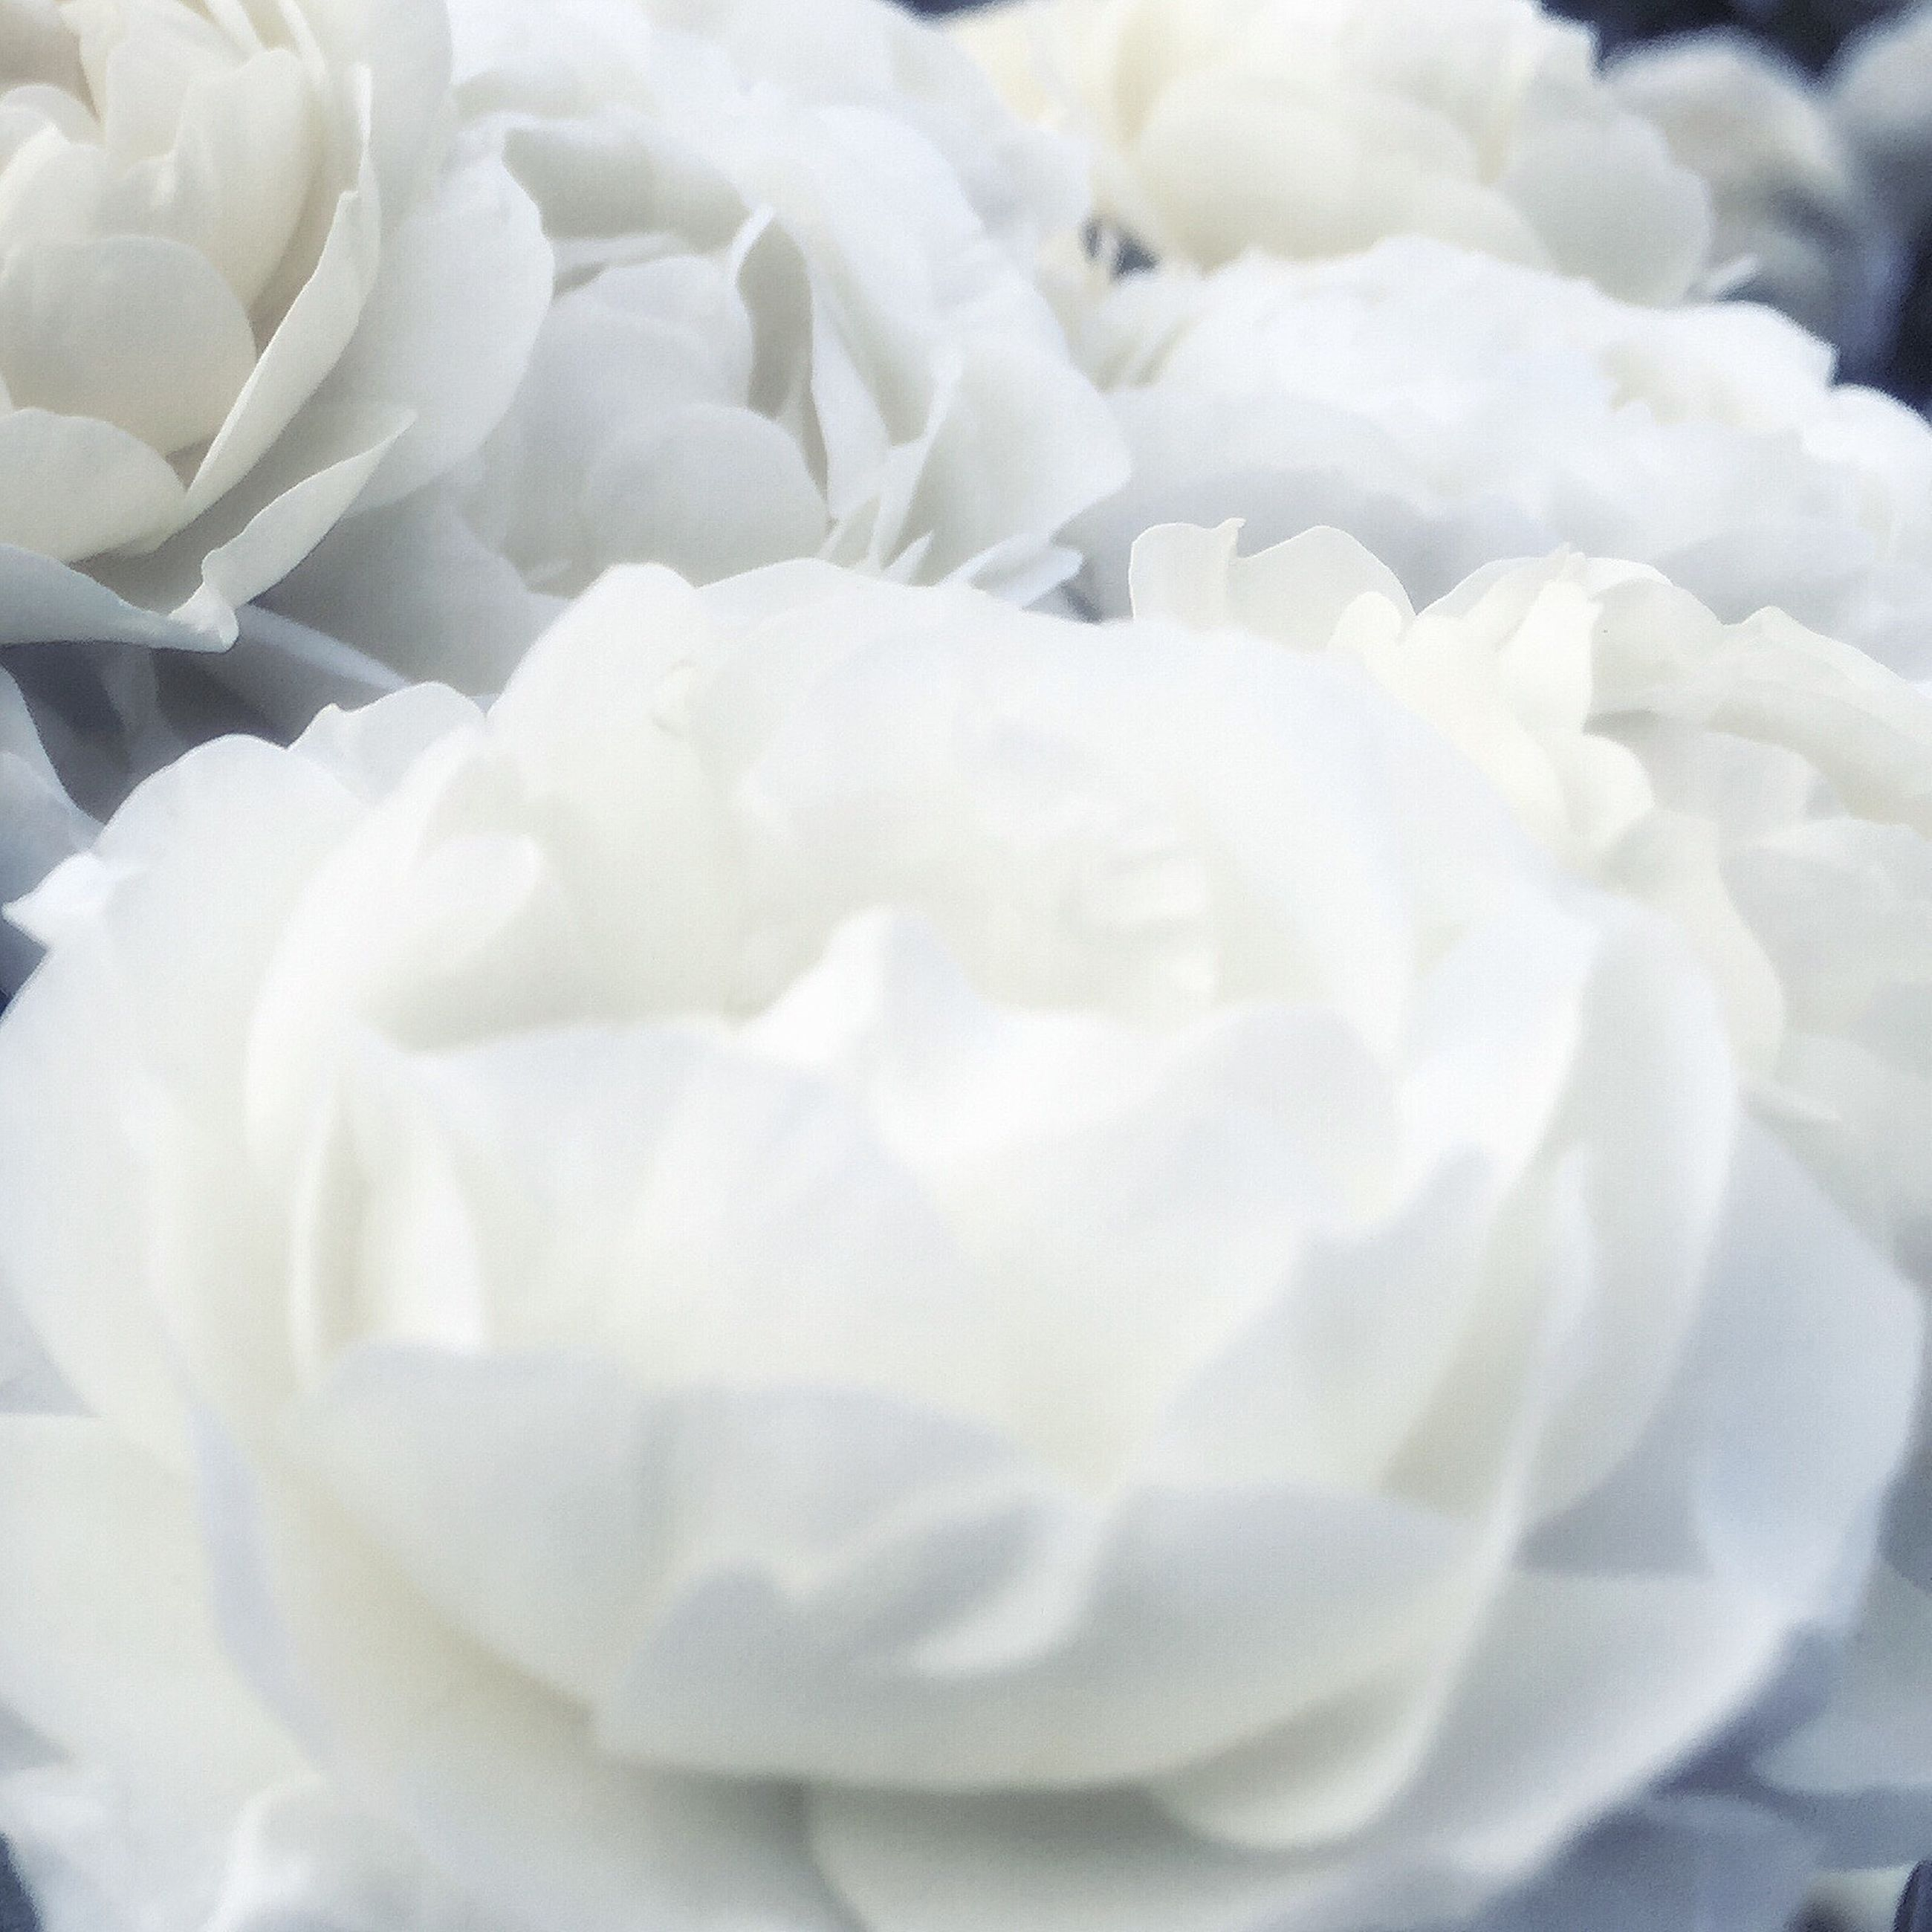 flower, petal, white color, flower head, fragility, full frame, beauty in nature, backgrounds, freshness, close-up, nature, white, softness, rose - flower, high angle view, growth, natural pattern, no people, single flower, blooming